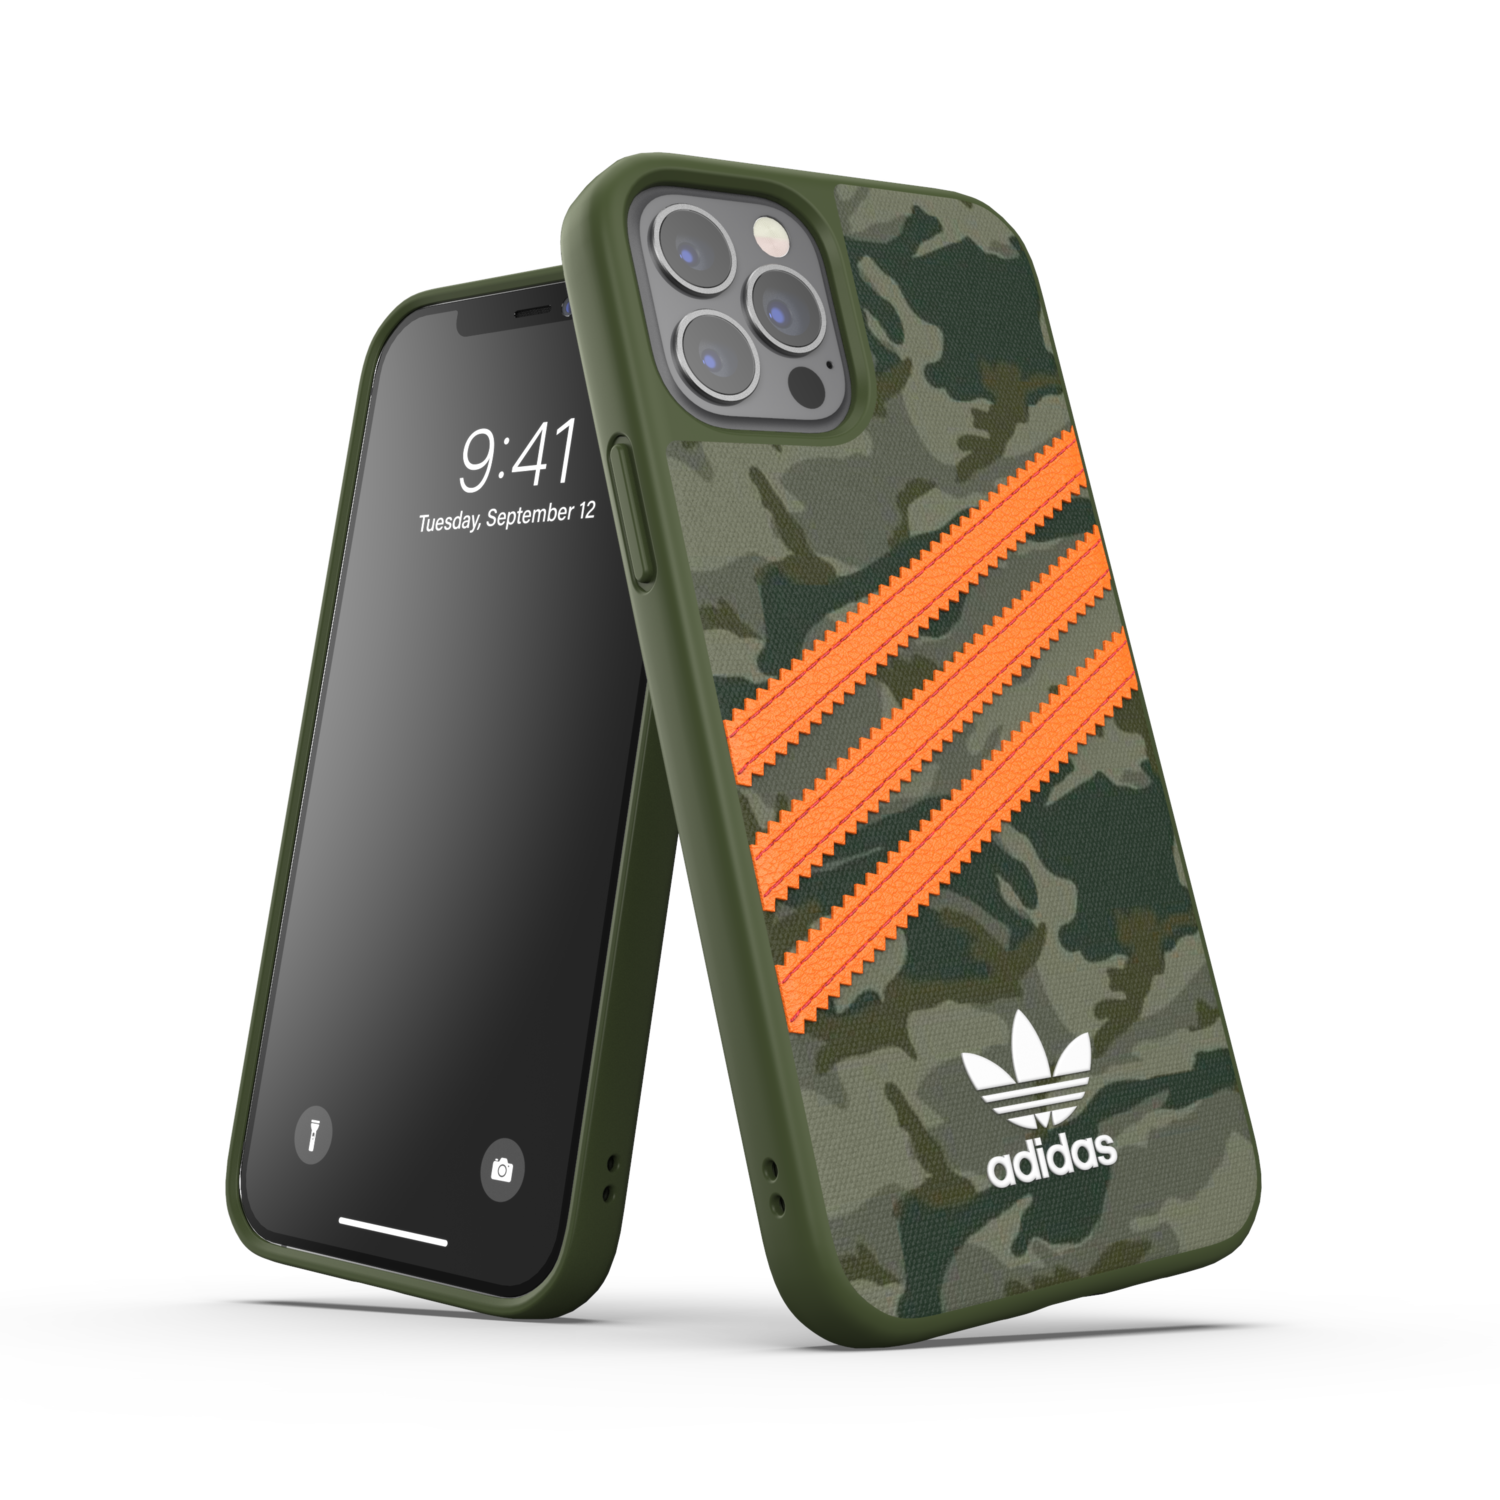 adidas OR Moulded Case PU FW20/SS21 for iPhone 12 / 12 Pro camo patteren/signal orange